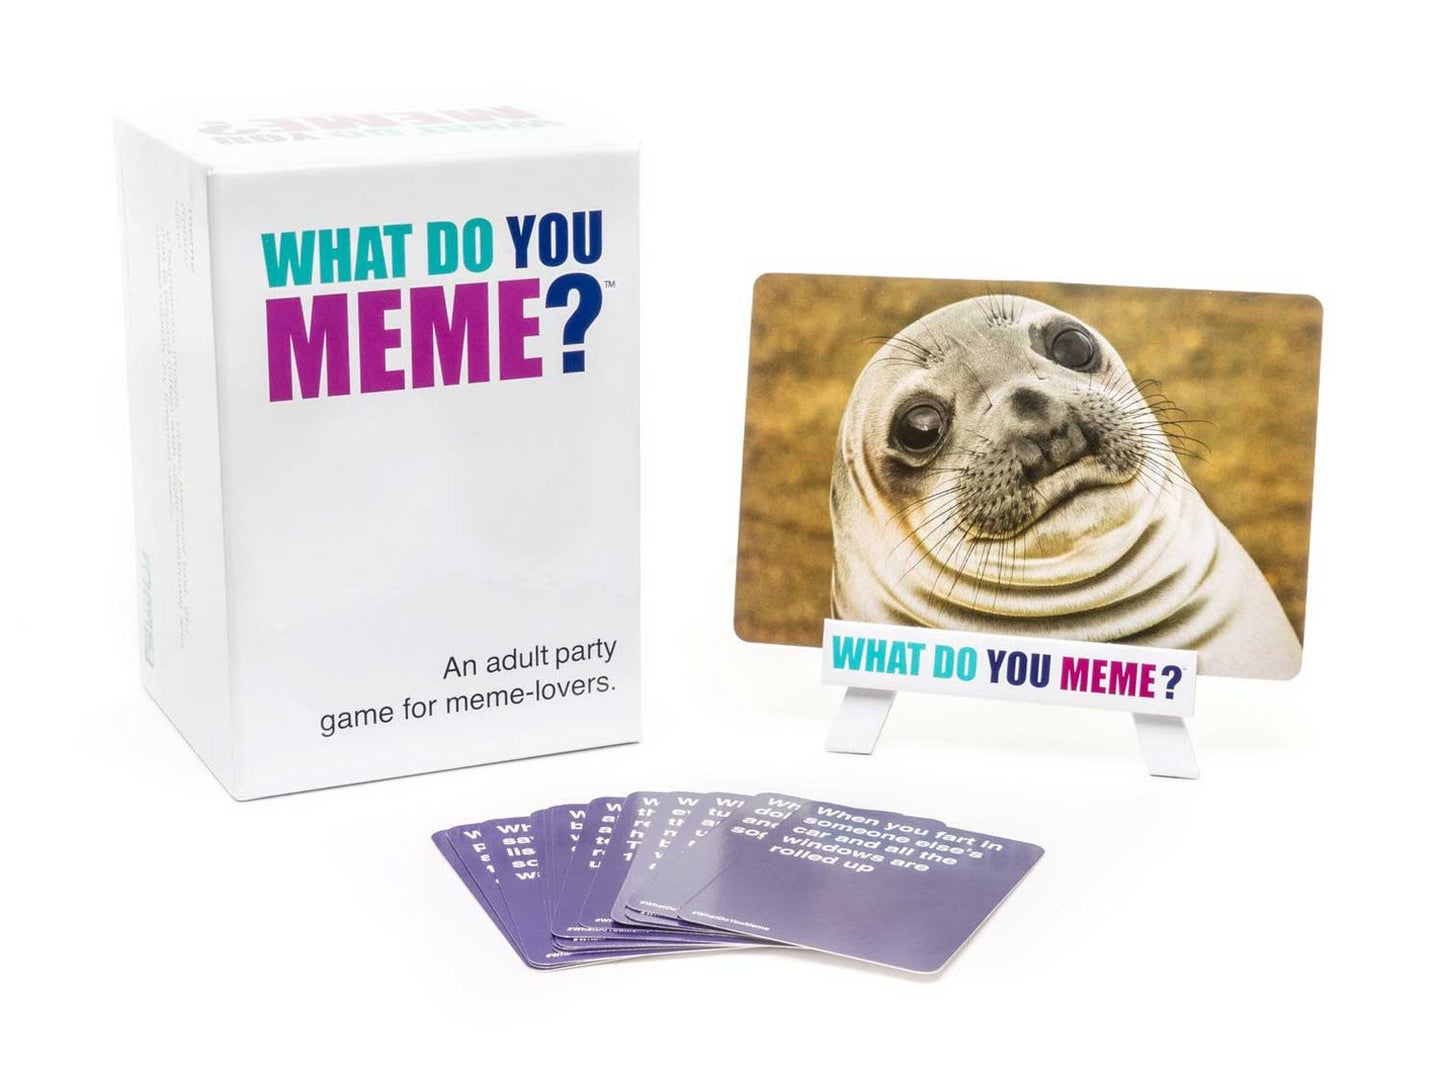 What Do You Meme? game